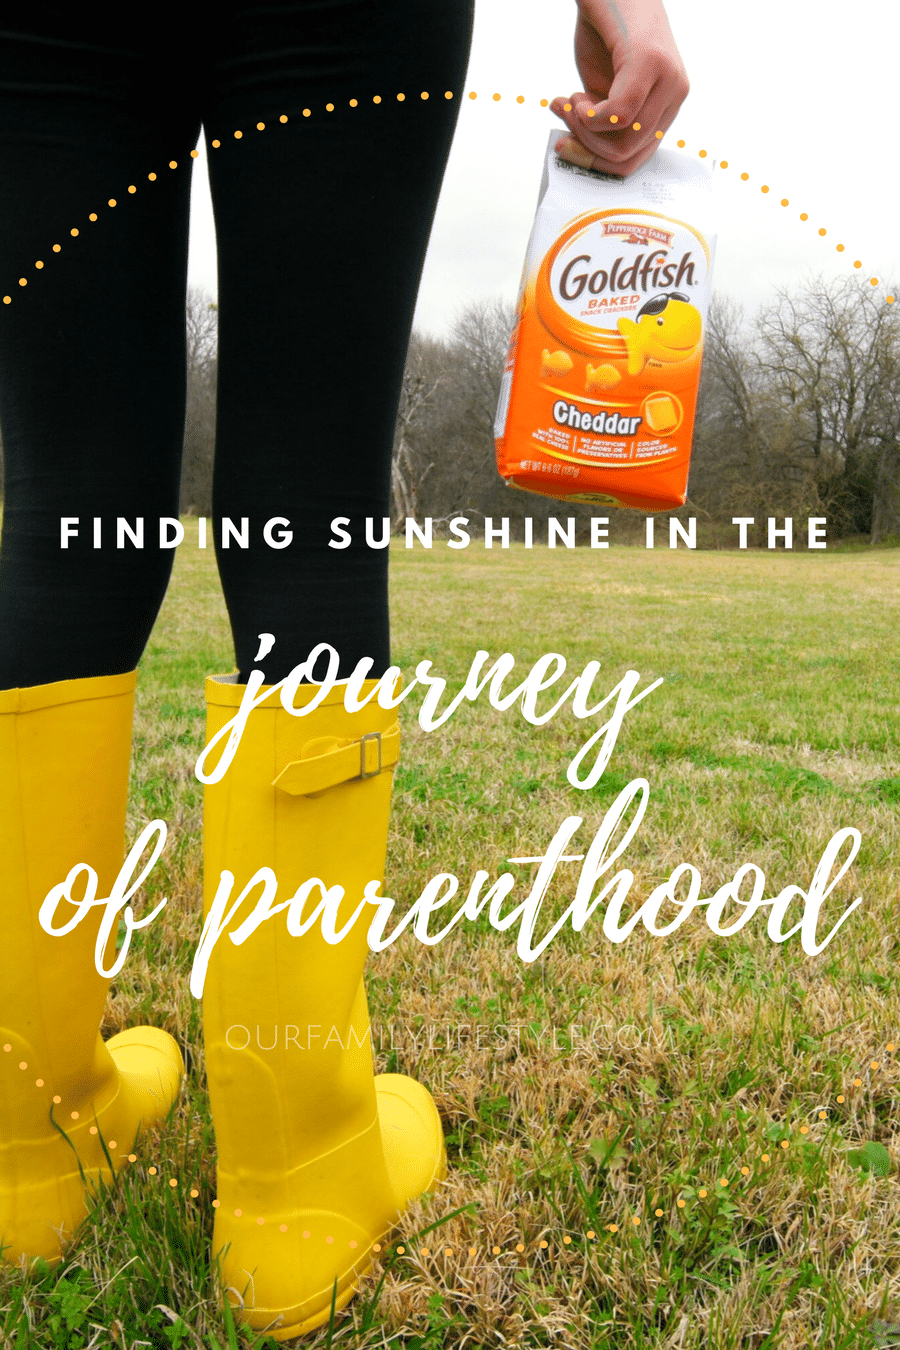 Finding Sunshine in the Journey of Parenthood